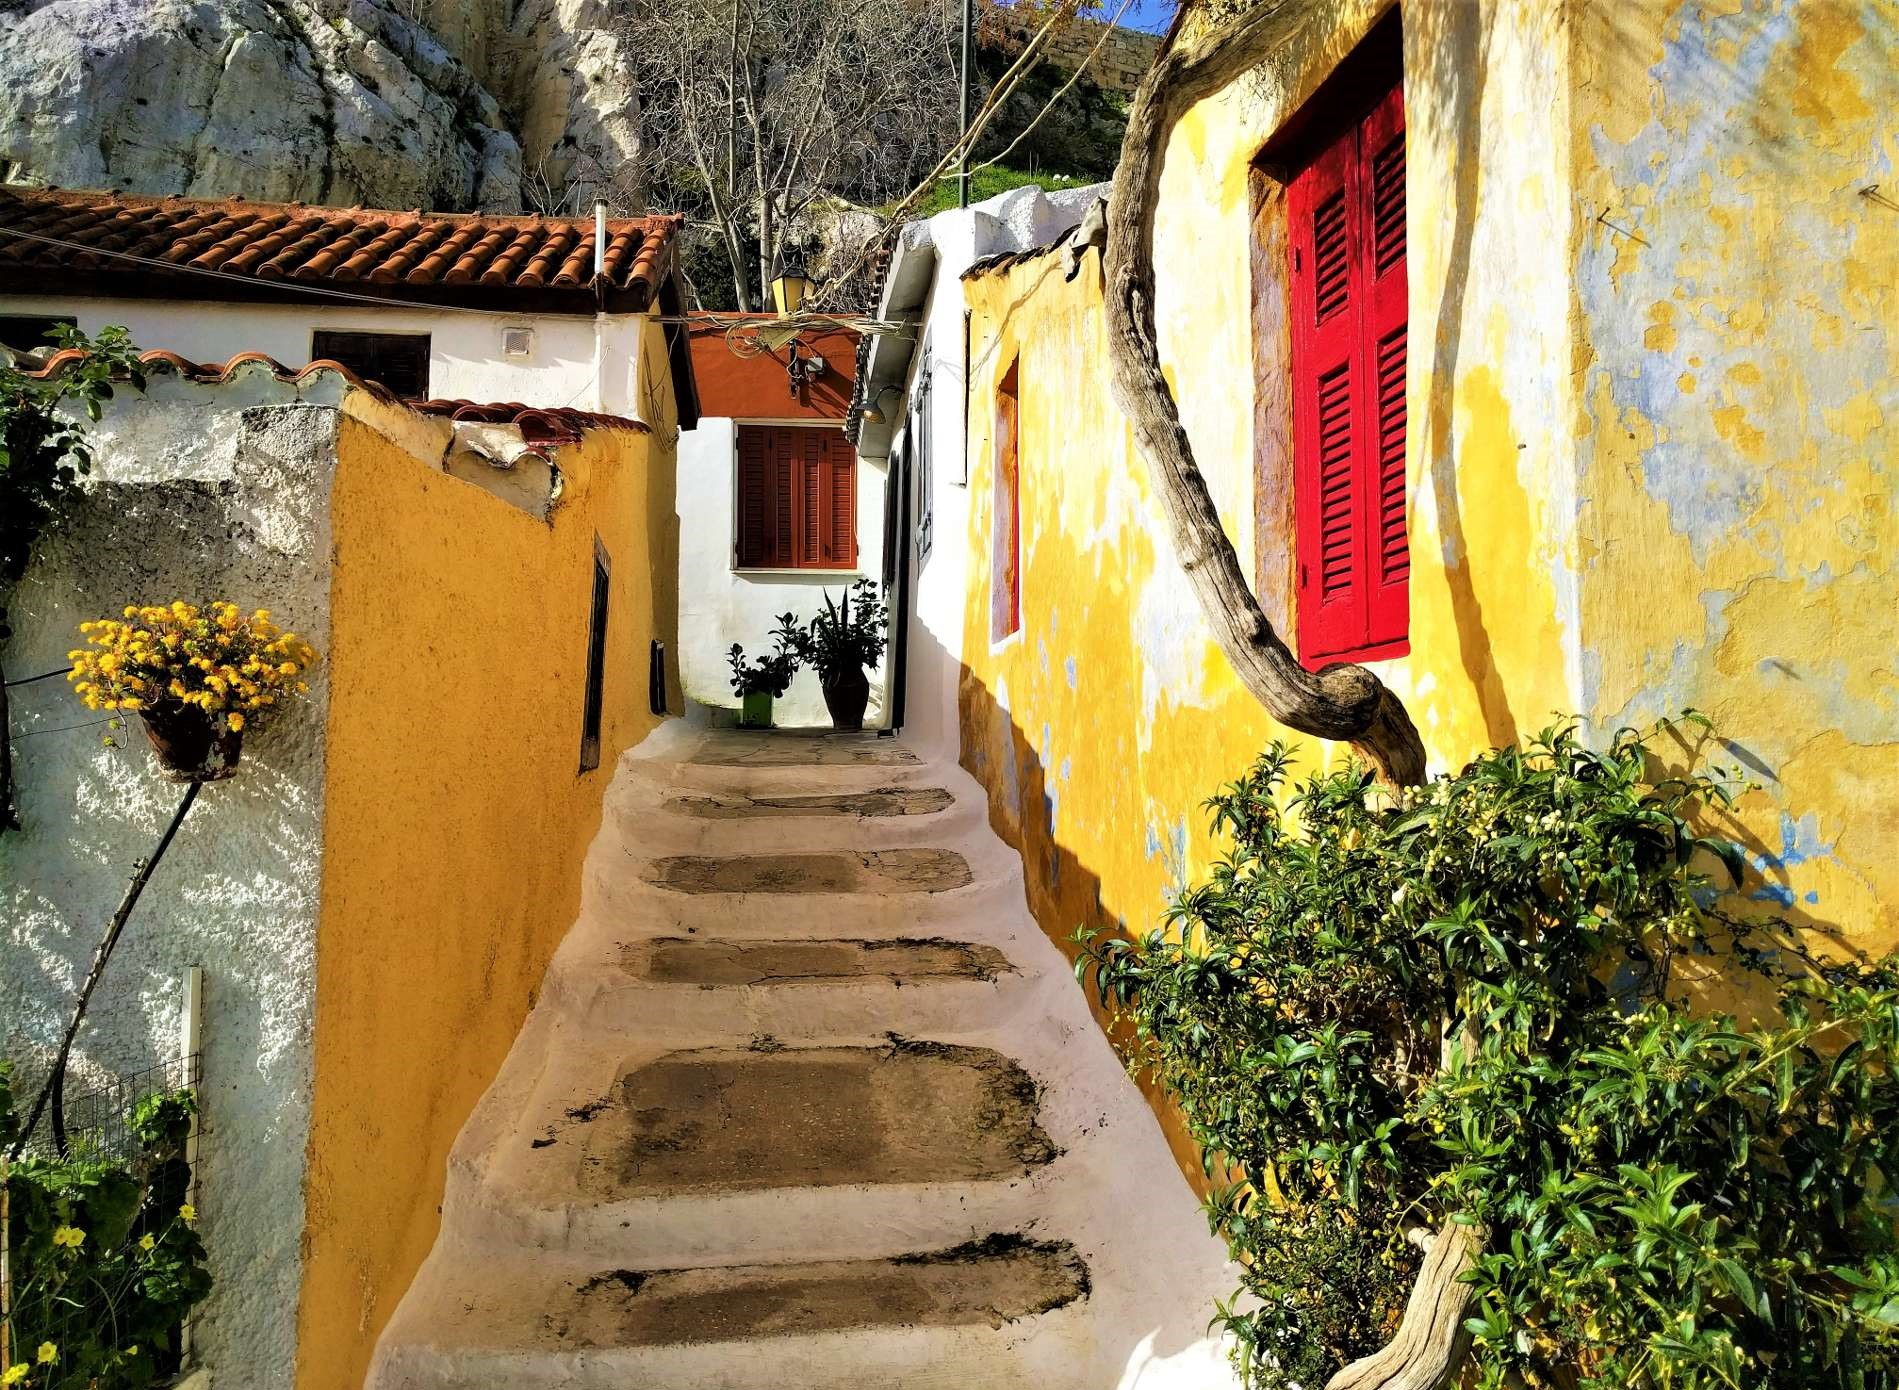 While in Plaka, head north to Anafiotika, undoubtedly the most beautiful and picturesque part of Plaka. Source: Truevoyagers